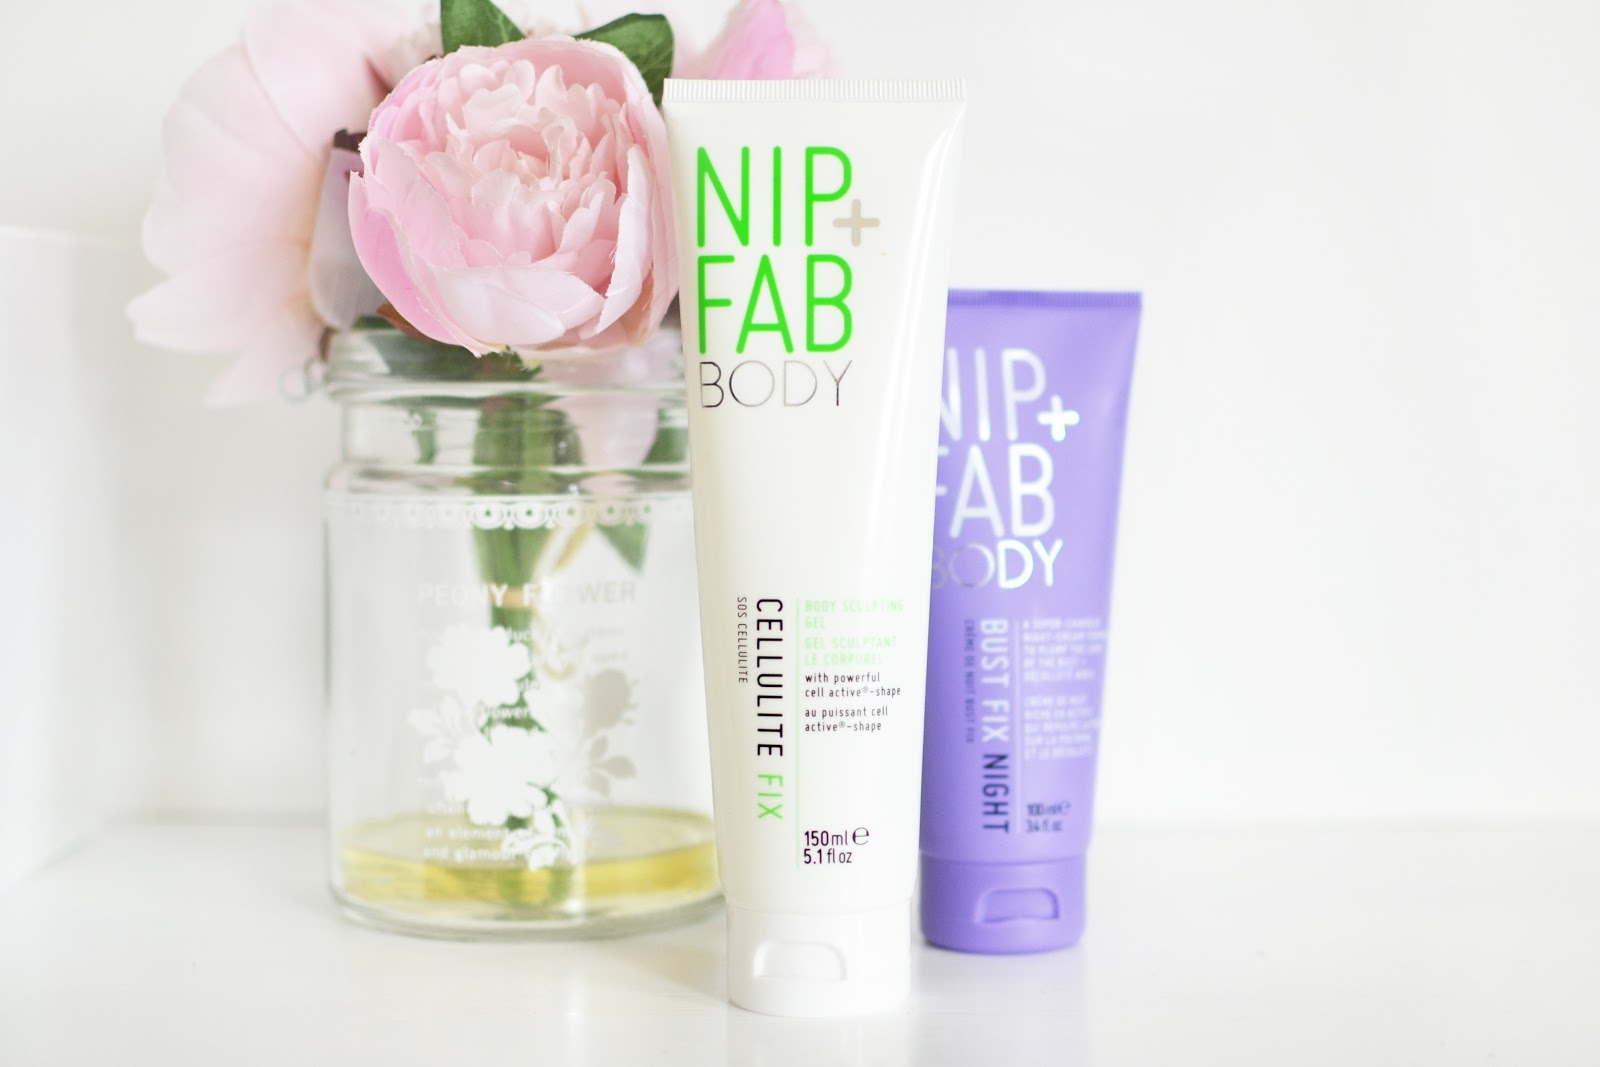 Nip+Fab - Cellulite Fix Body Sculpting Gel